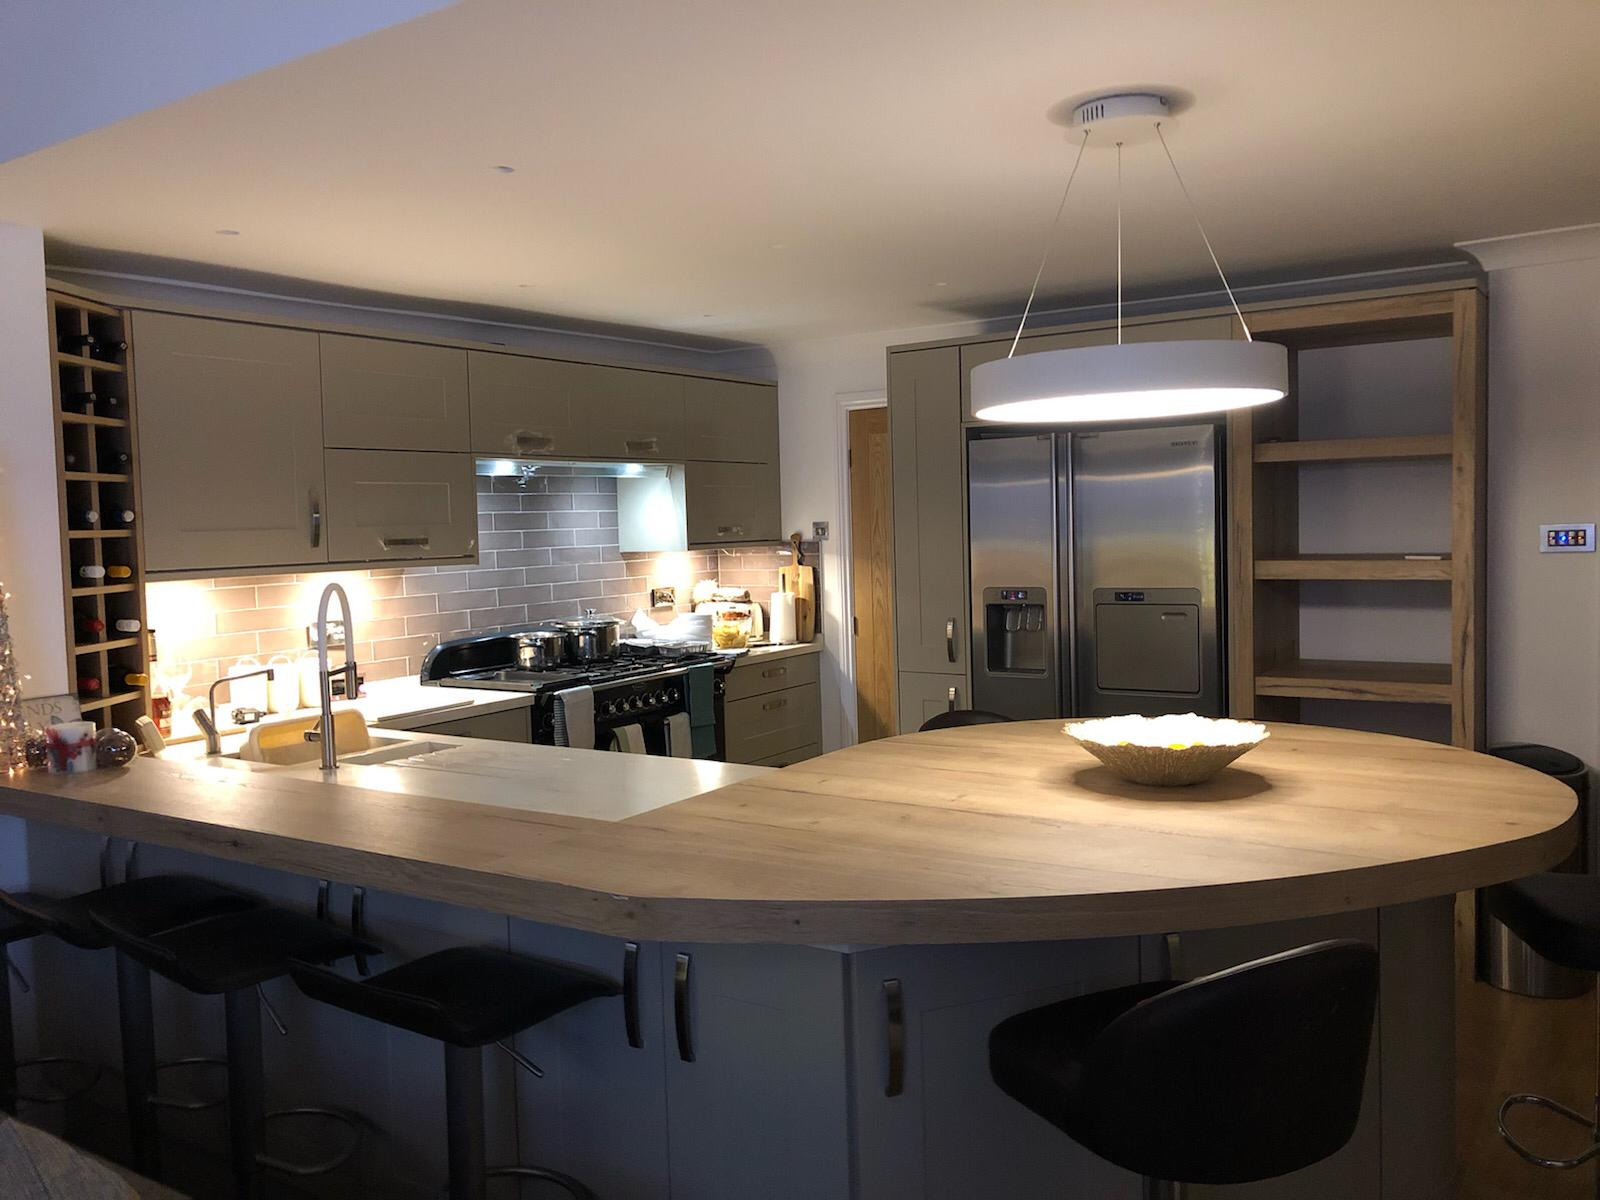 kitchens leeds